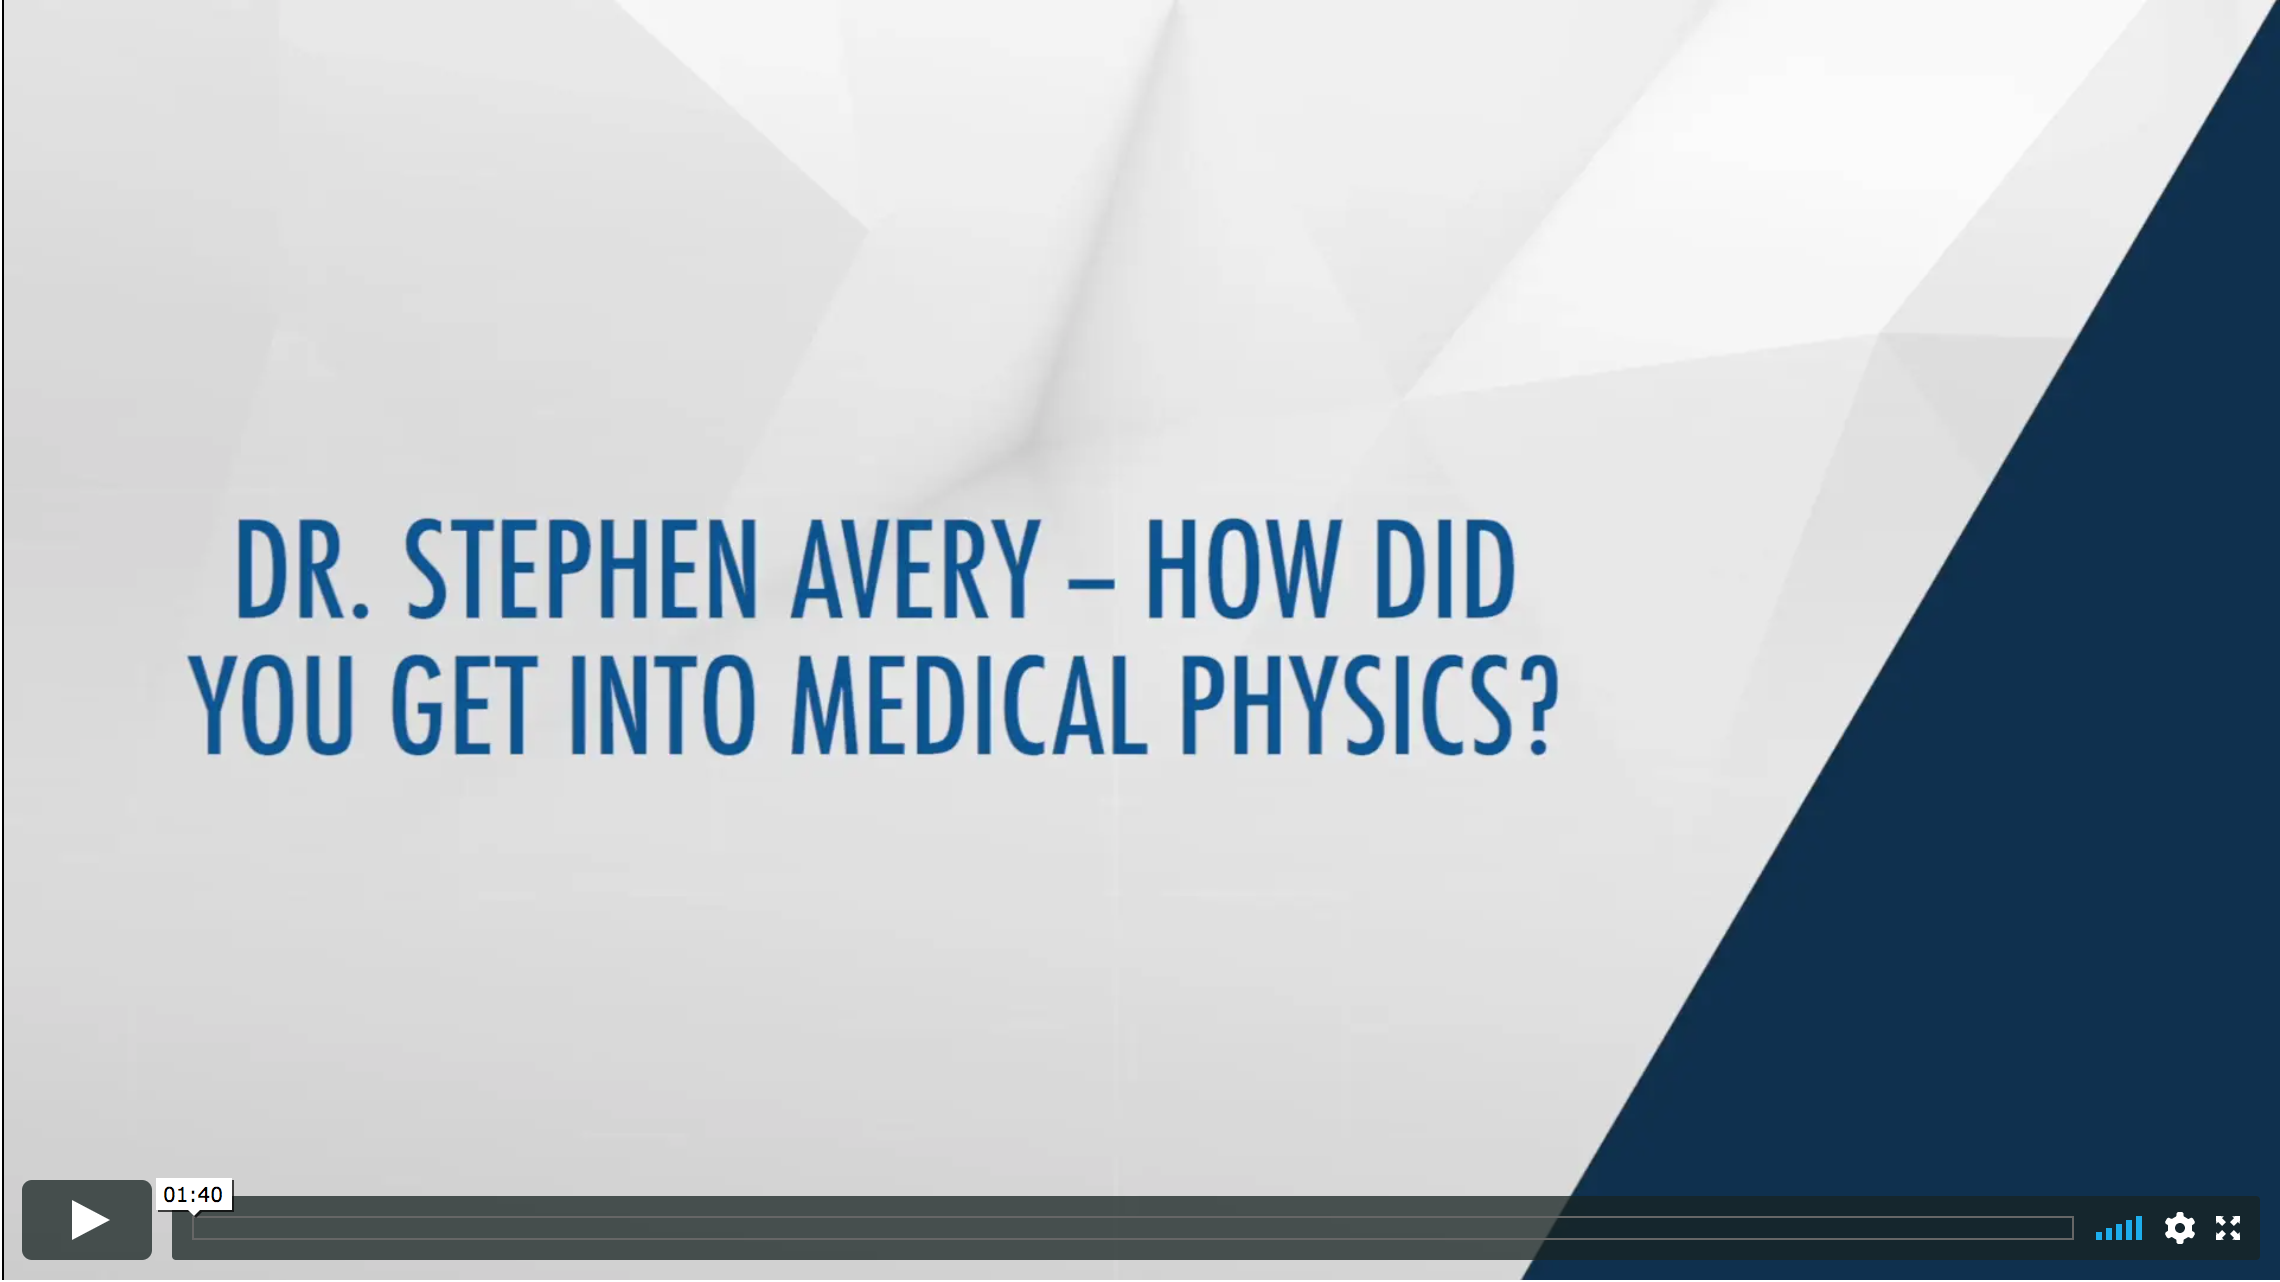 Dr. Stephen Avery - How did you get into Medical Physics? Video Thumbnail